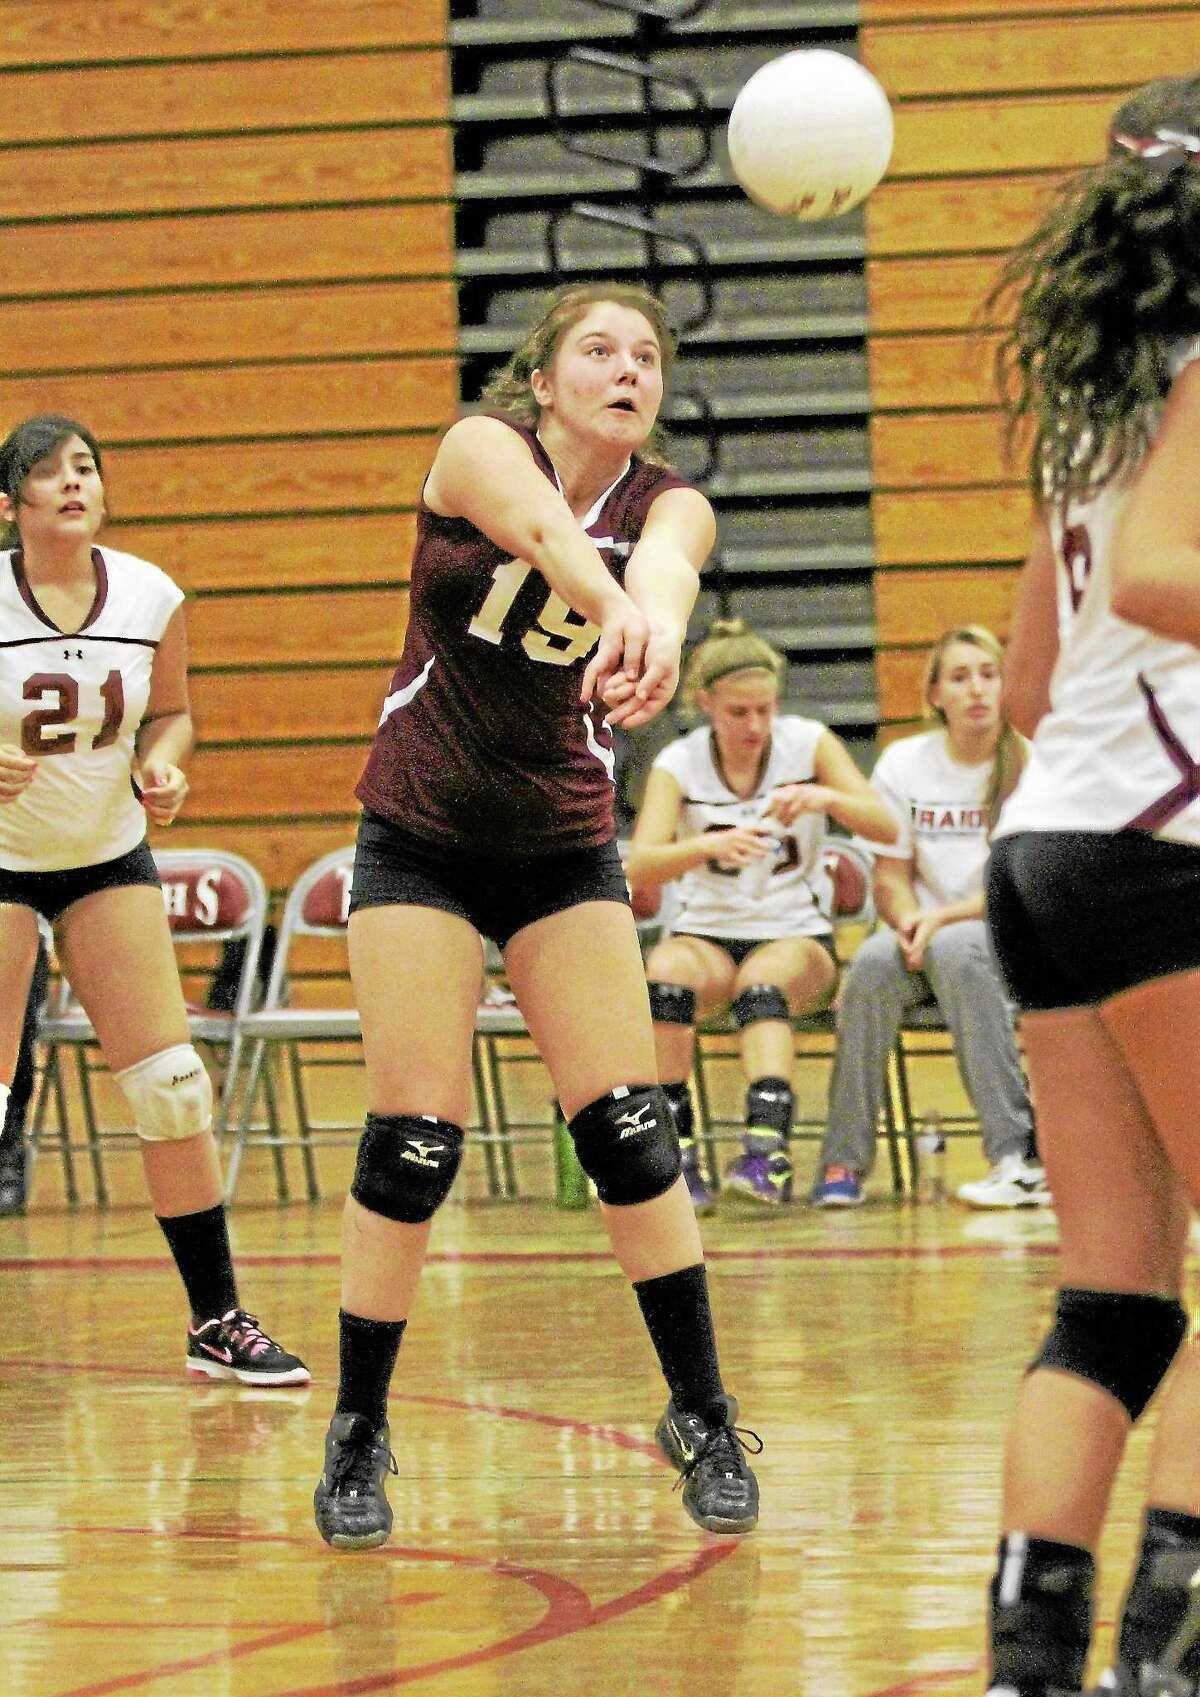 Torrington's Shelby Consolini was the Red Raiders lone representative on the All-NVL team this season. Kiley Rosengrant and Carly Ruzbasan were chosen for the All-Copper team.